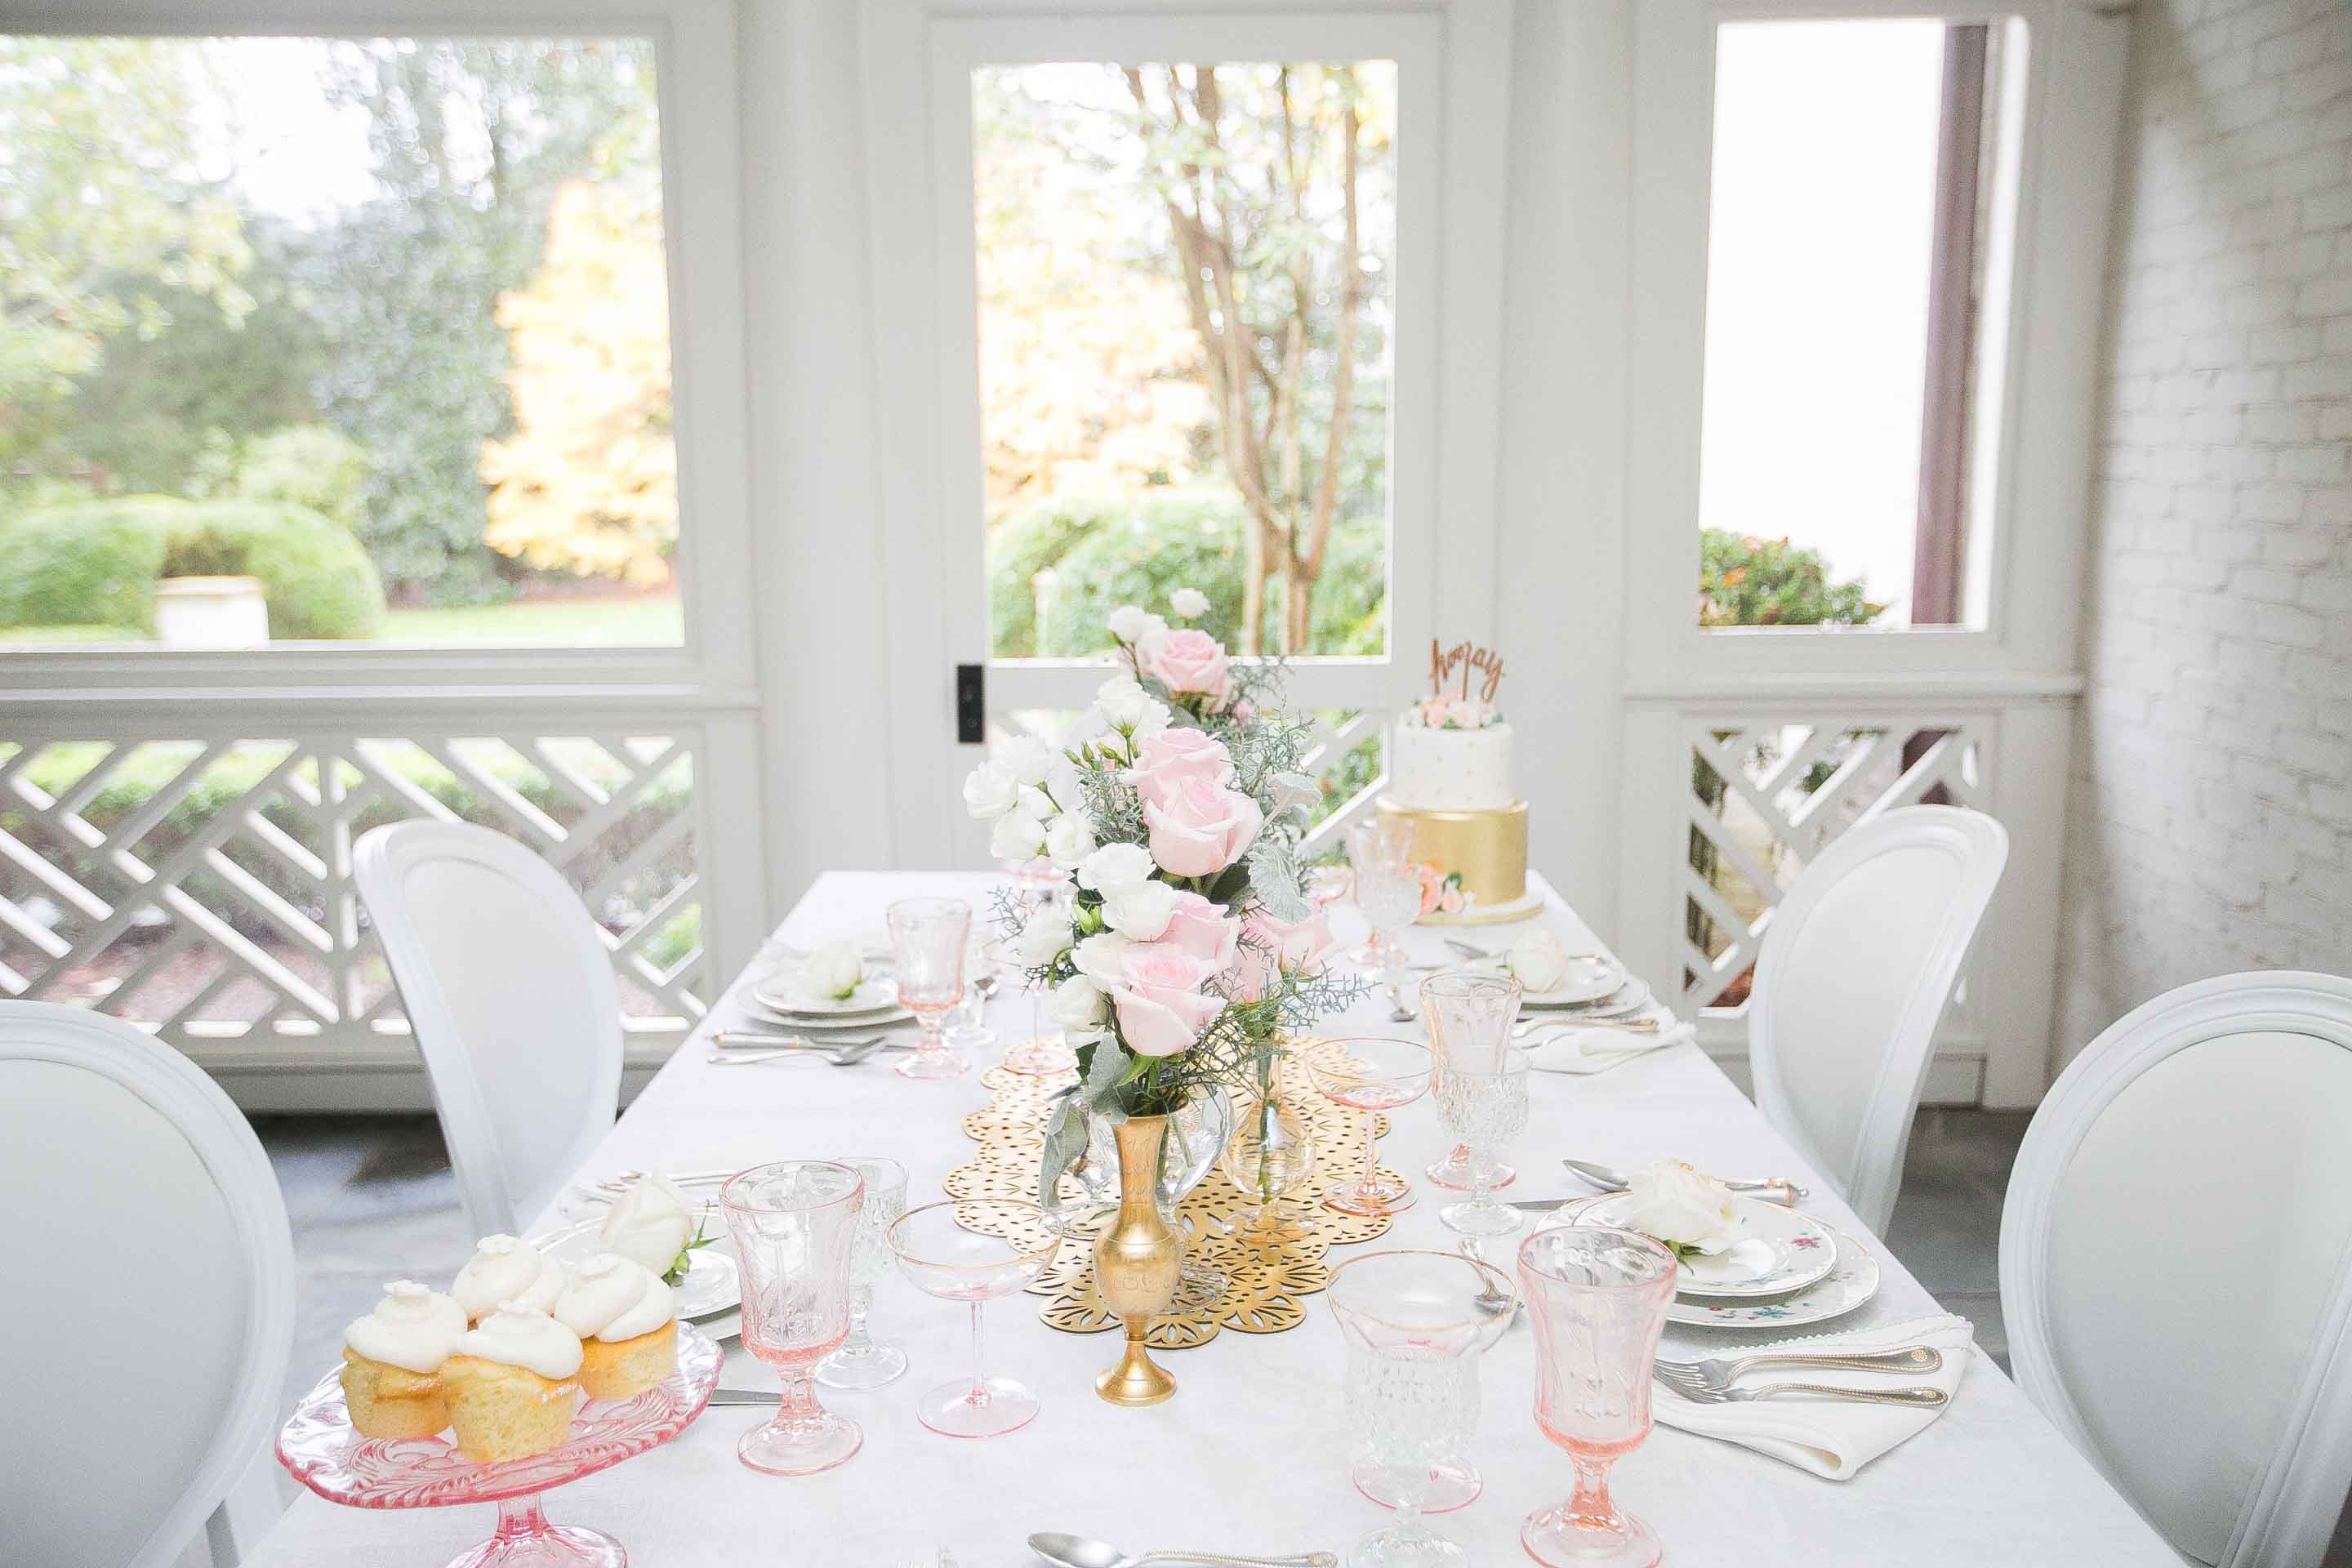 host a winter bridal shower with bhldn by fashionablehostesscom11